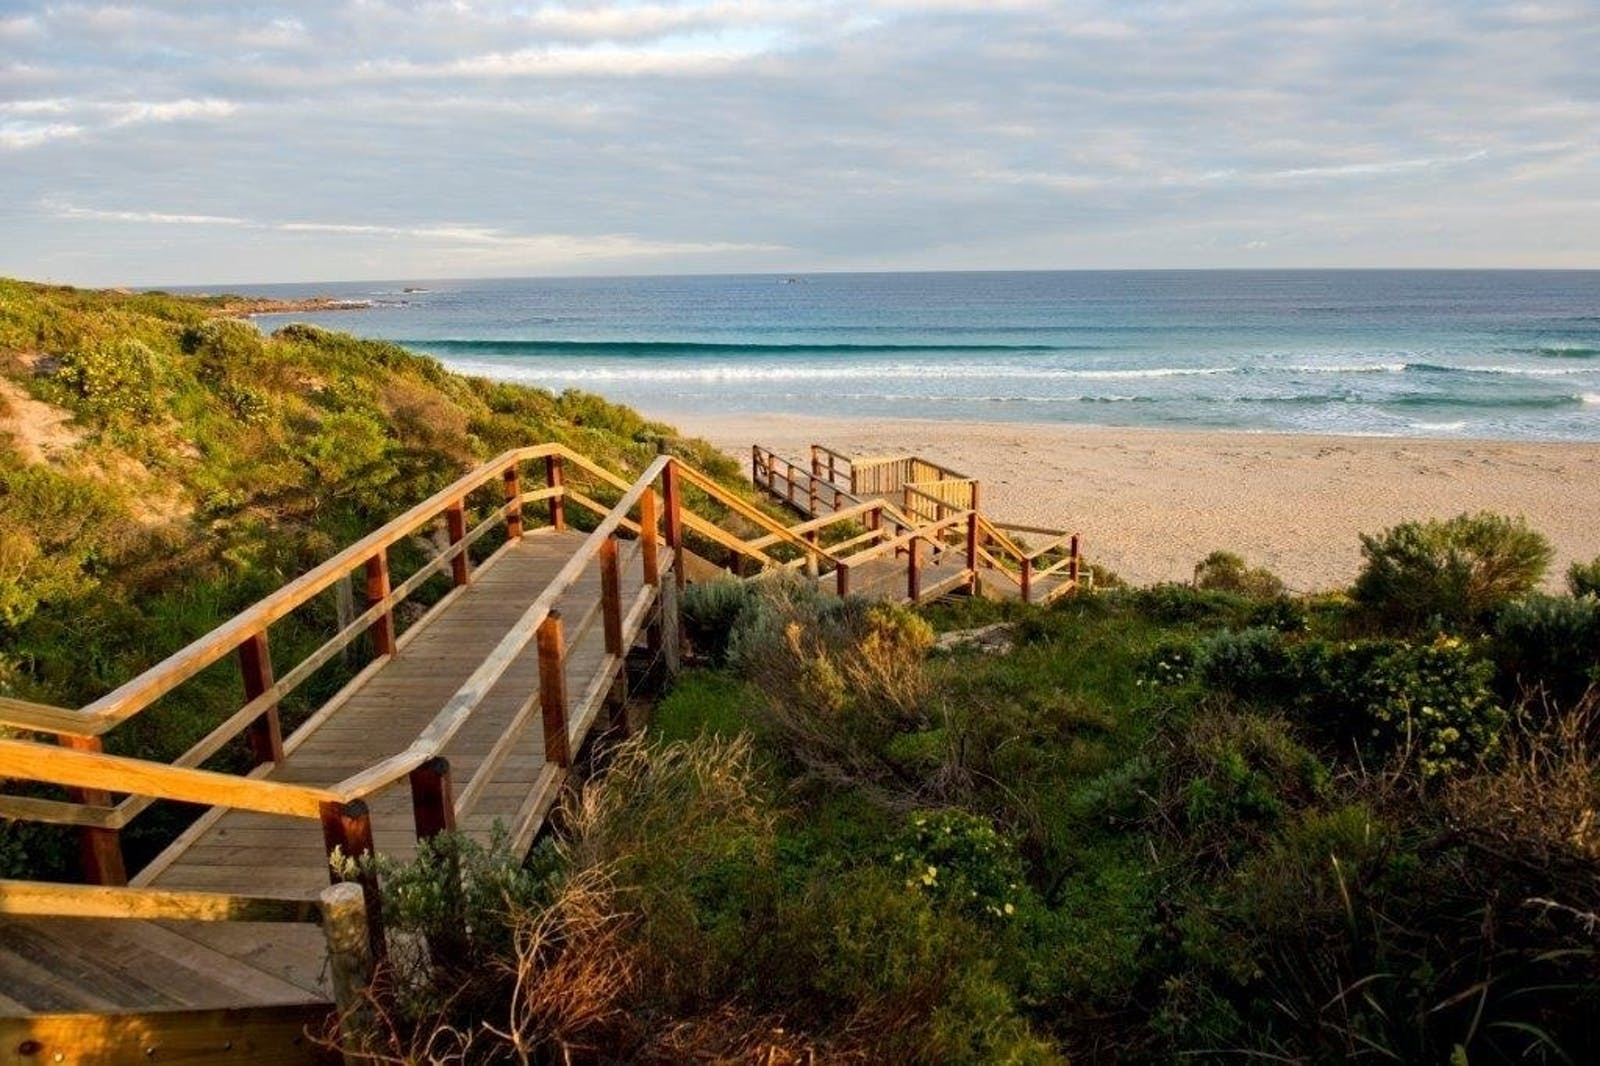 Smiths Beach Resort, Margaret River, Western Australia